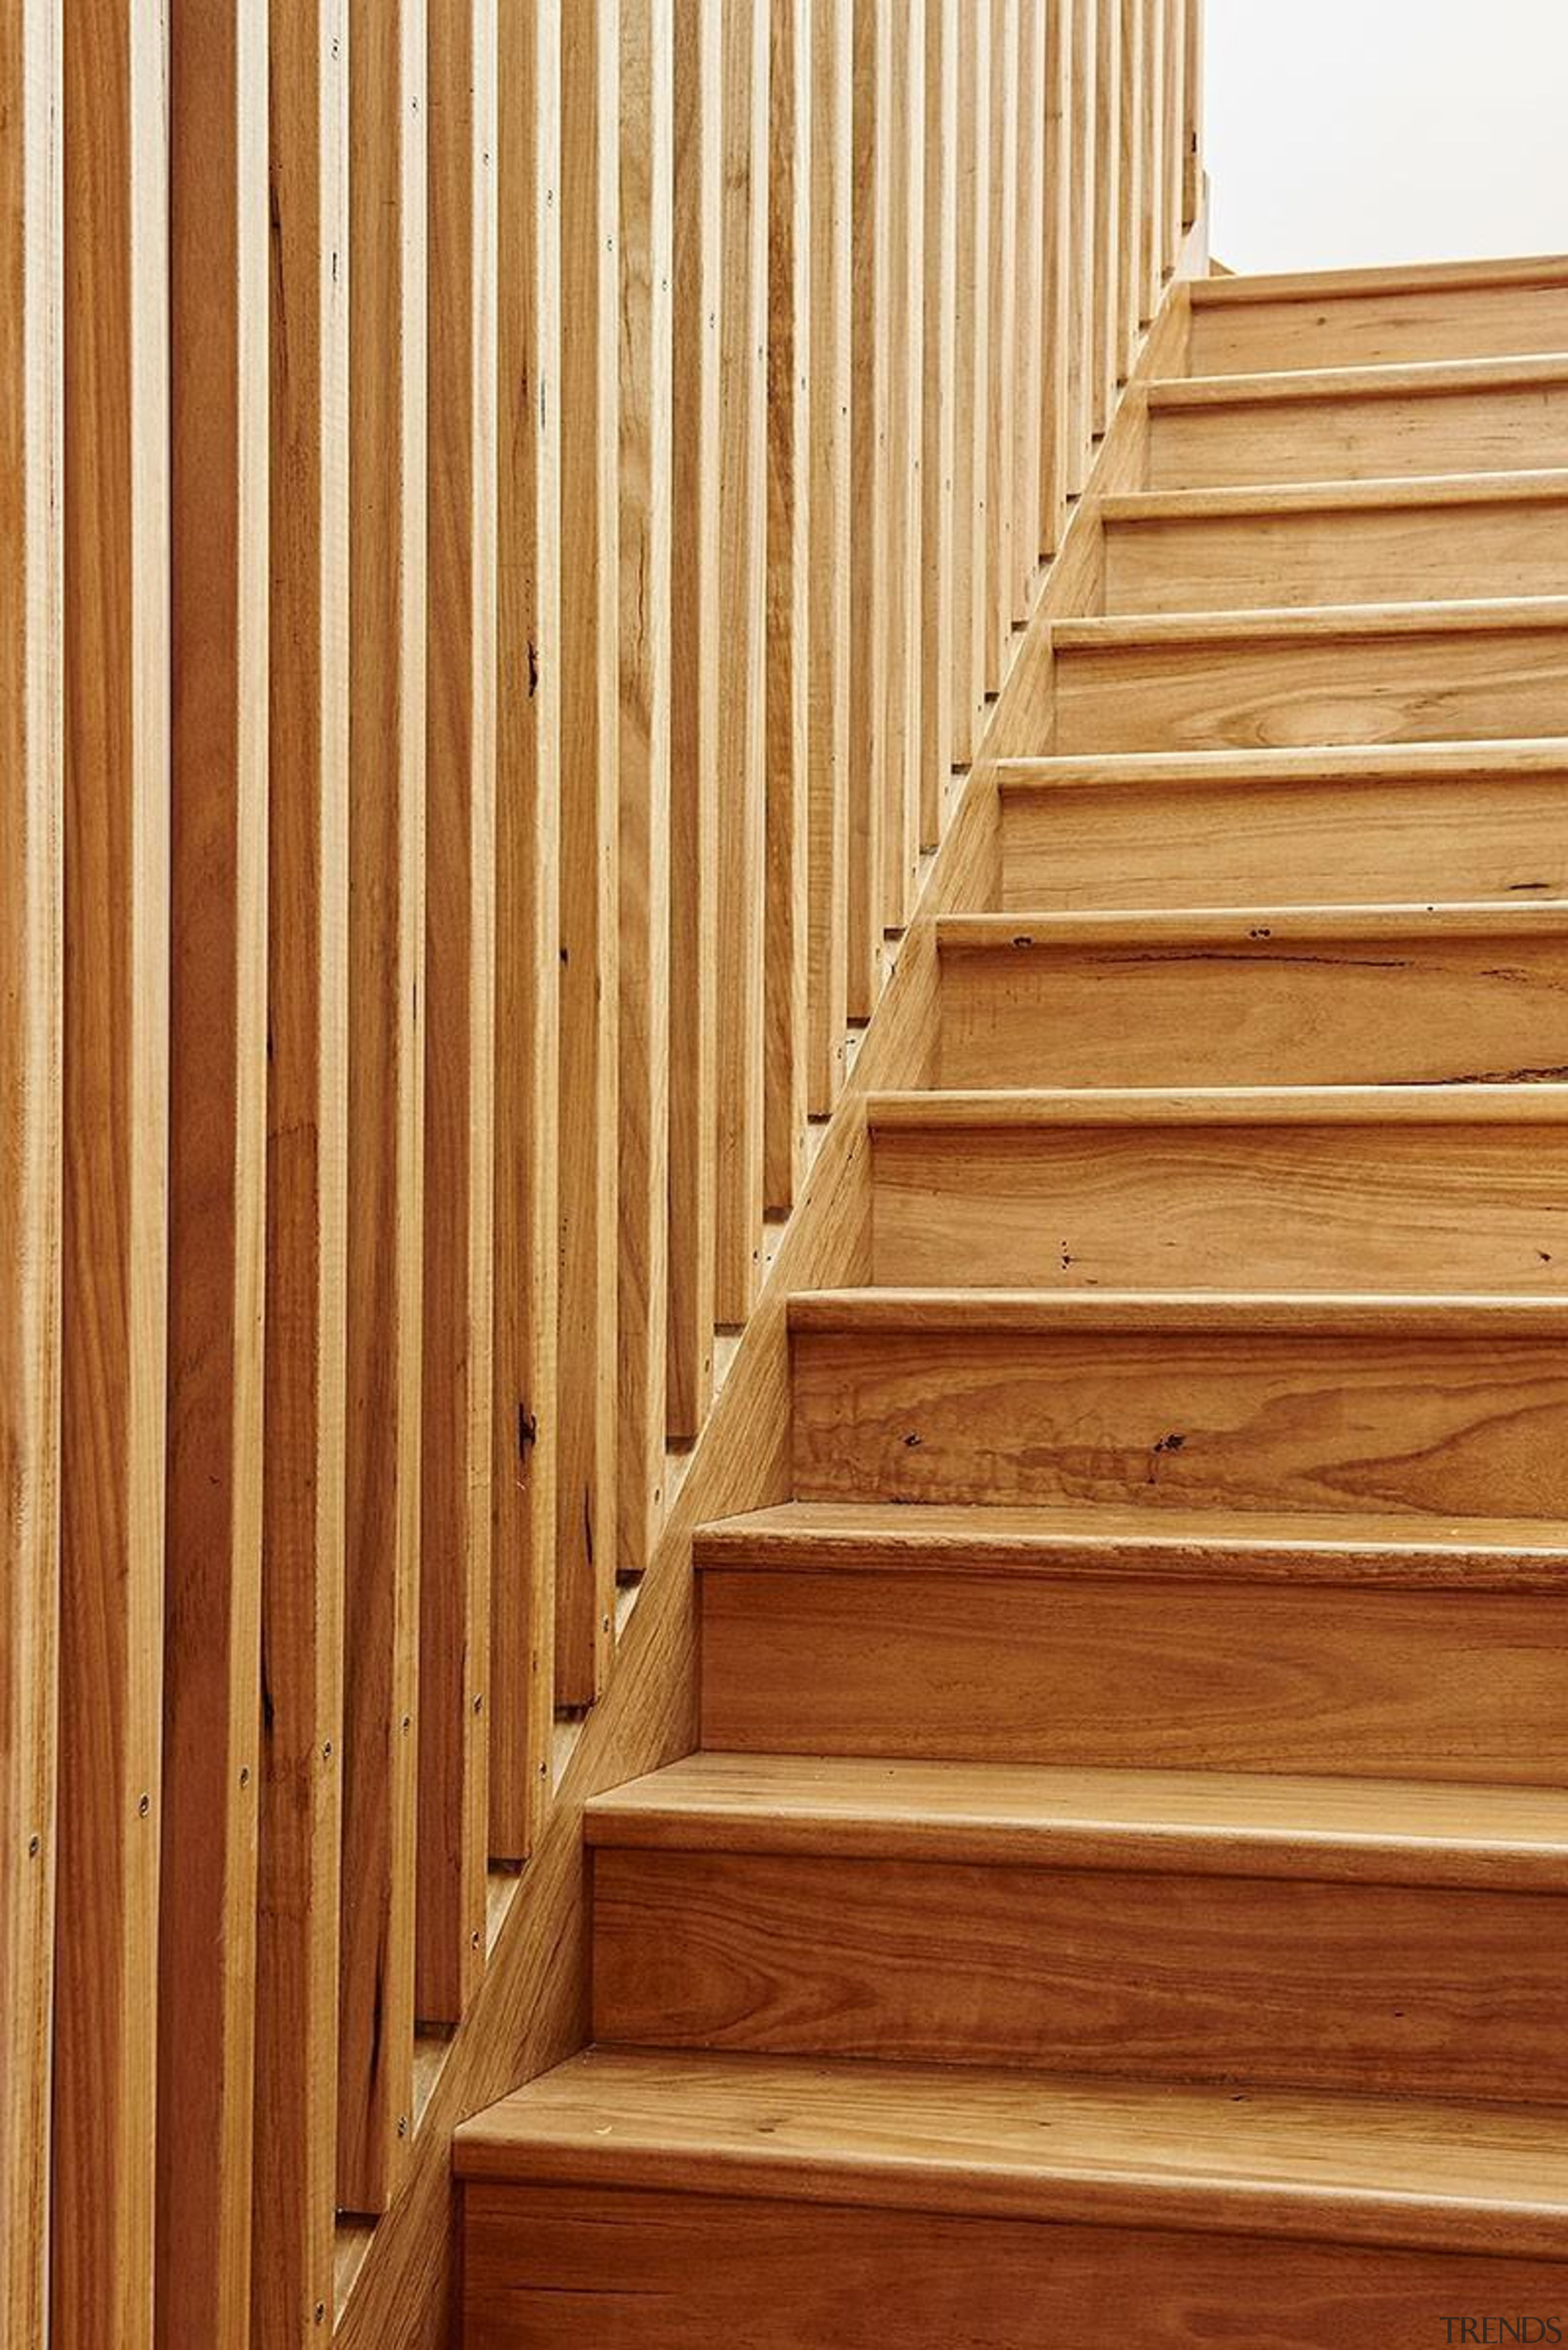 Timber is the star of the show with floor, flooring, garapa, handrail, hardwood, laminate flooring, line, lumber, plywood, stairs, wall, wood, wood flooring, wood stain, brown, orange